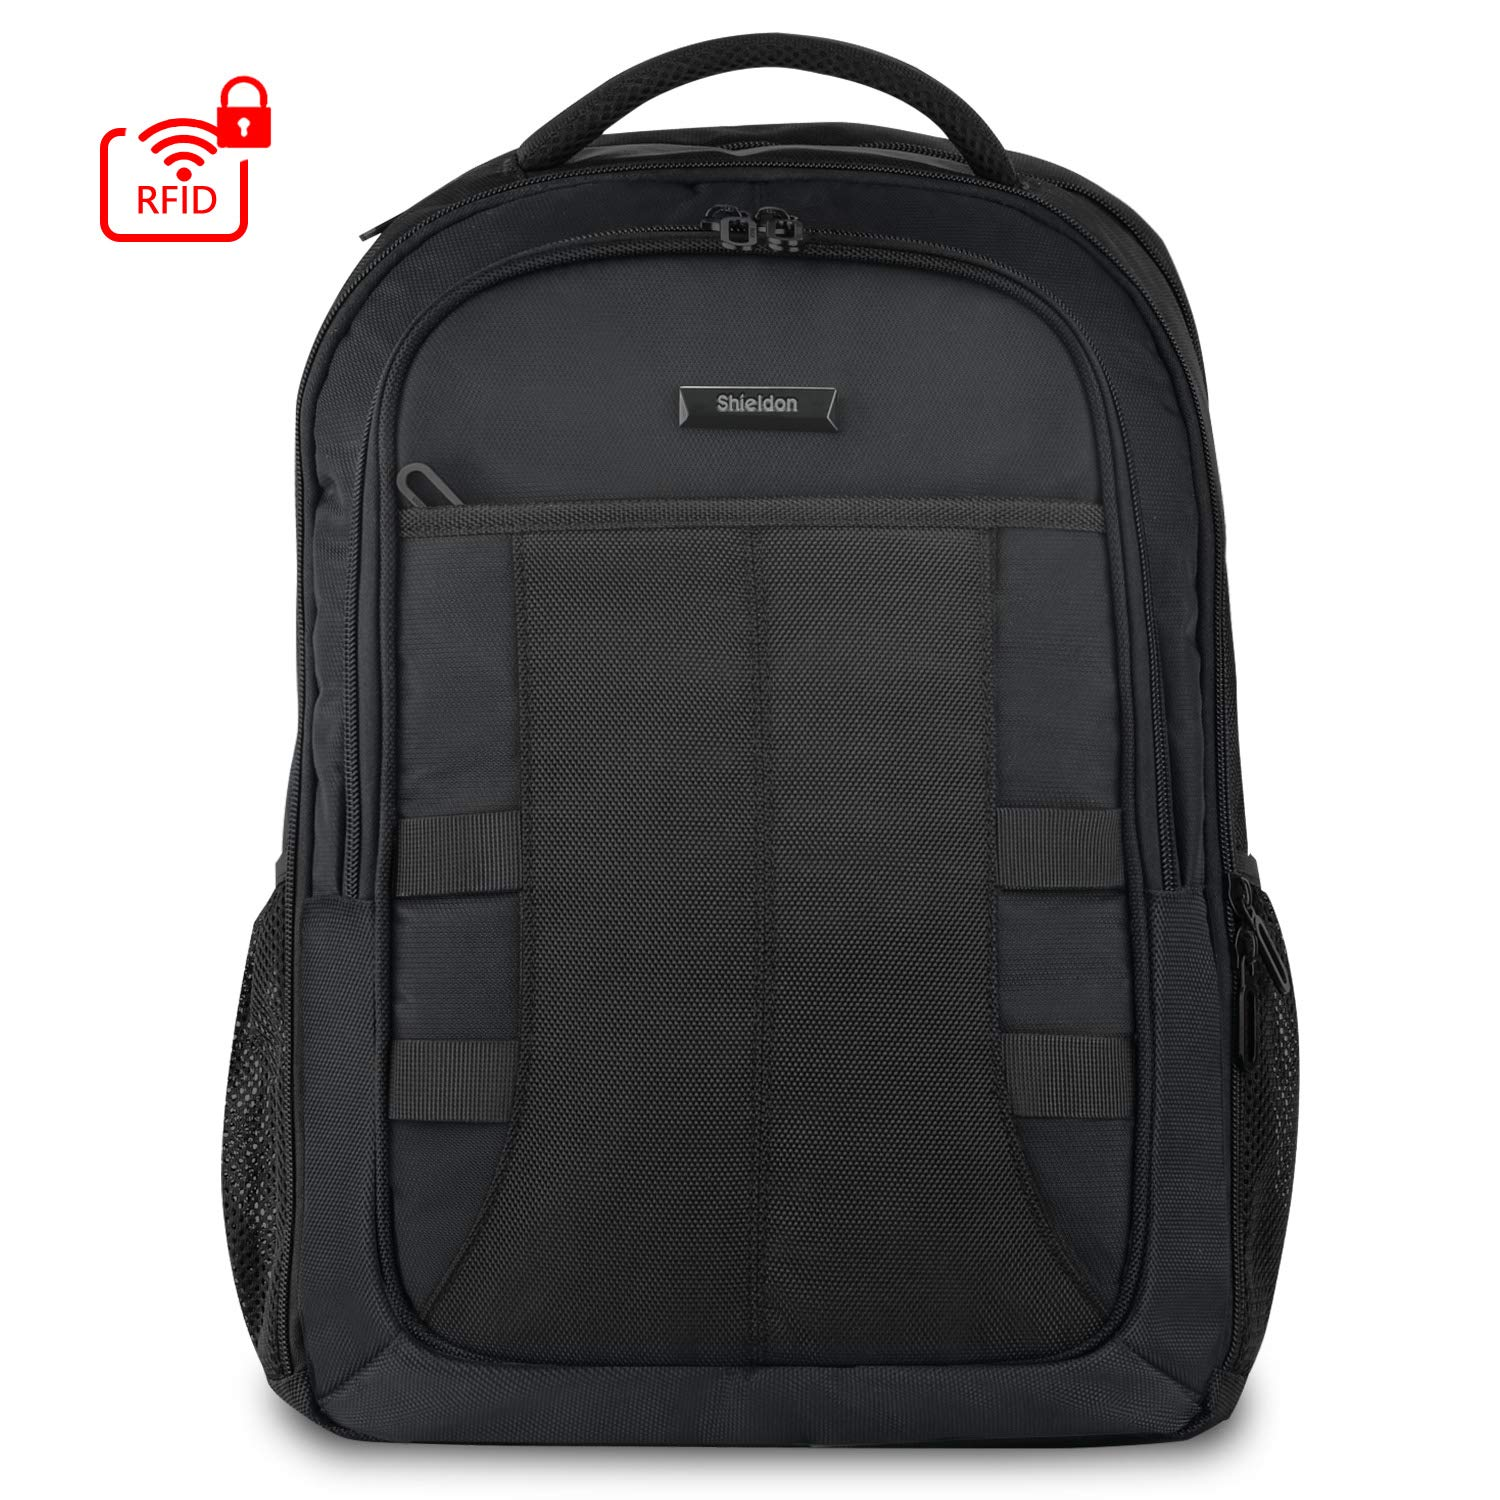 SHIELDON Travel Laptop Backpack, 15.6-inch Laptop Backpack, 27L Carry-on Backpack with RFID Pocket Anti-Theft Water Repellent Business Backpack Large Capacity Schoolbag for Men Women – Black